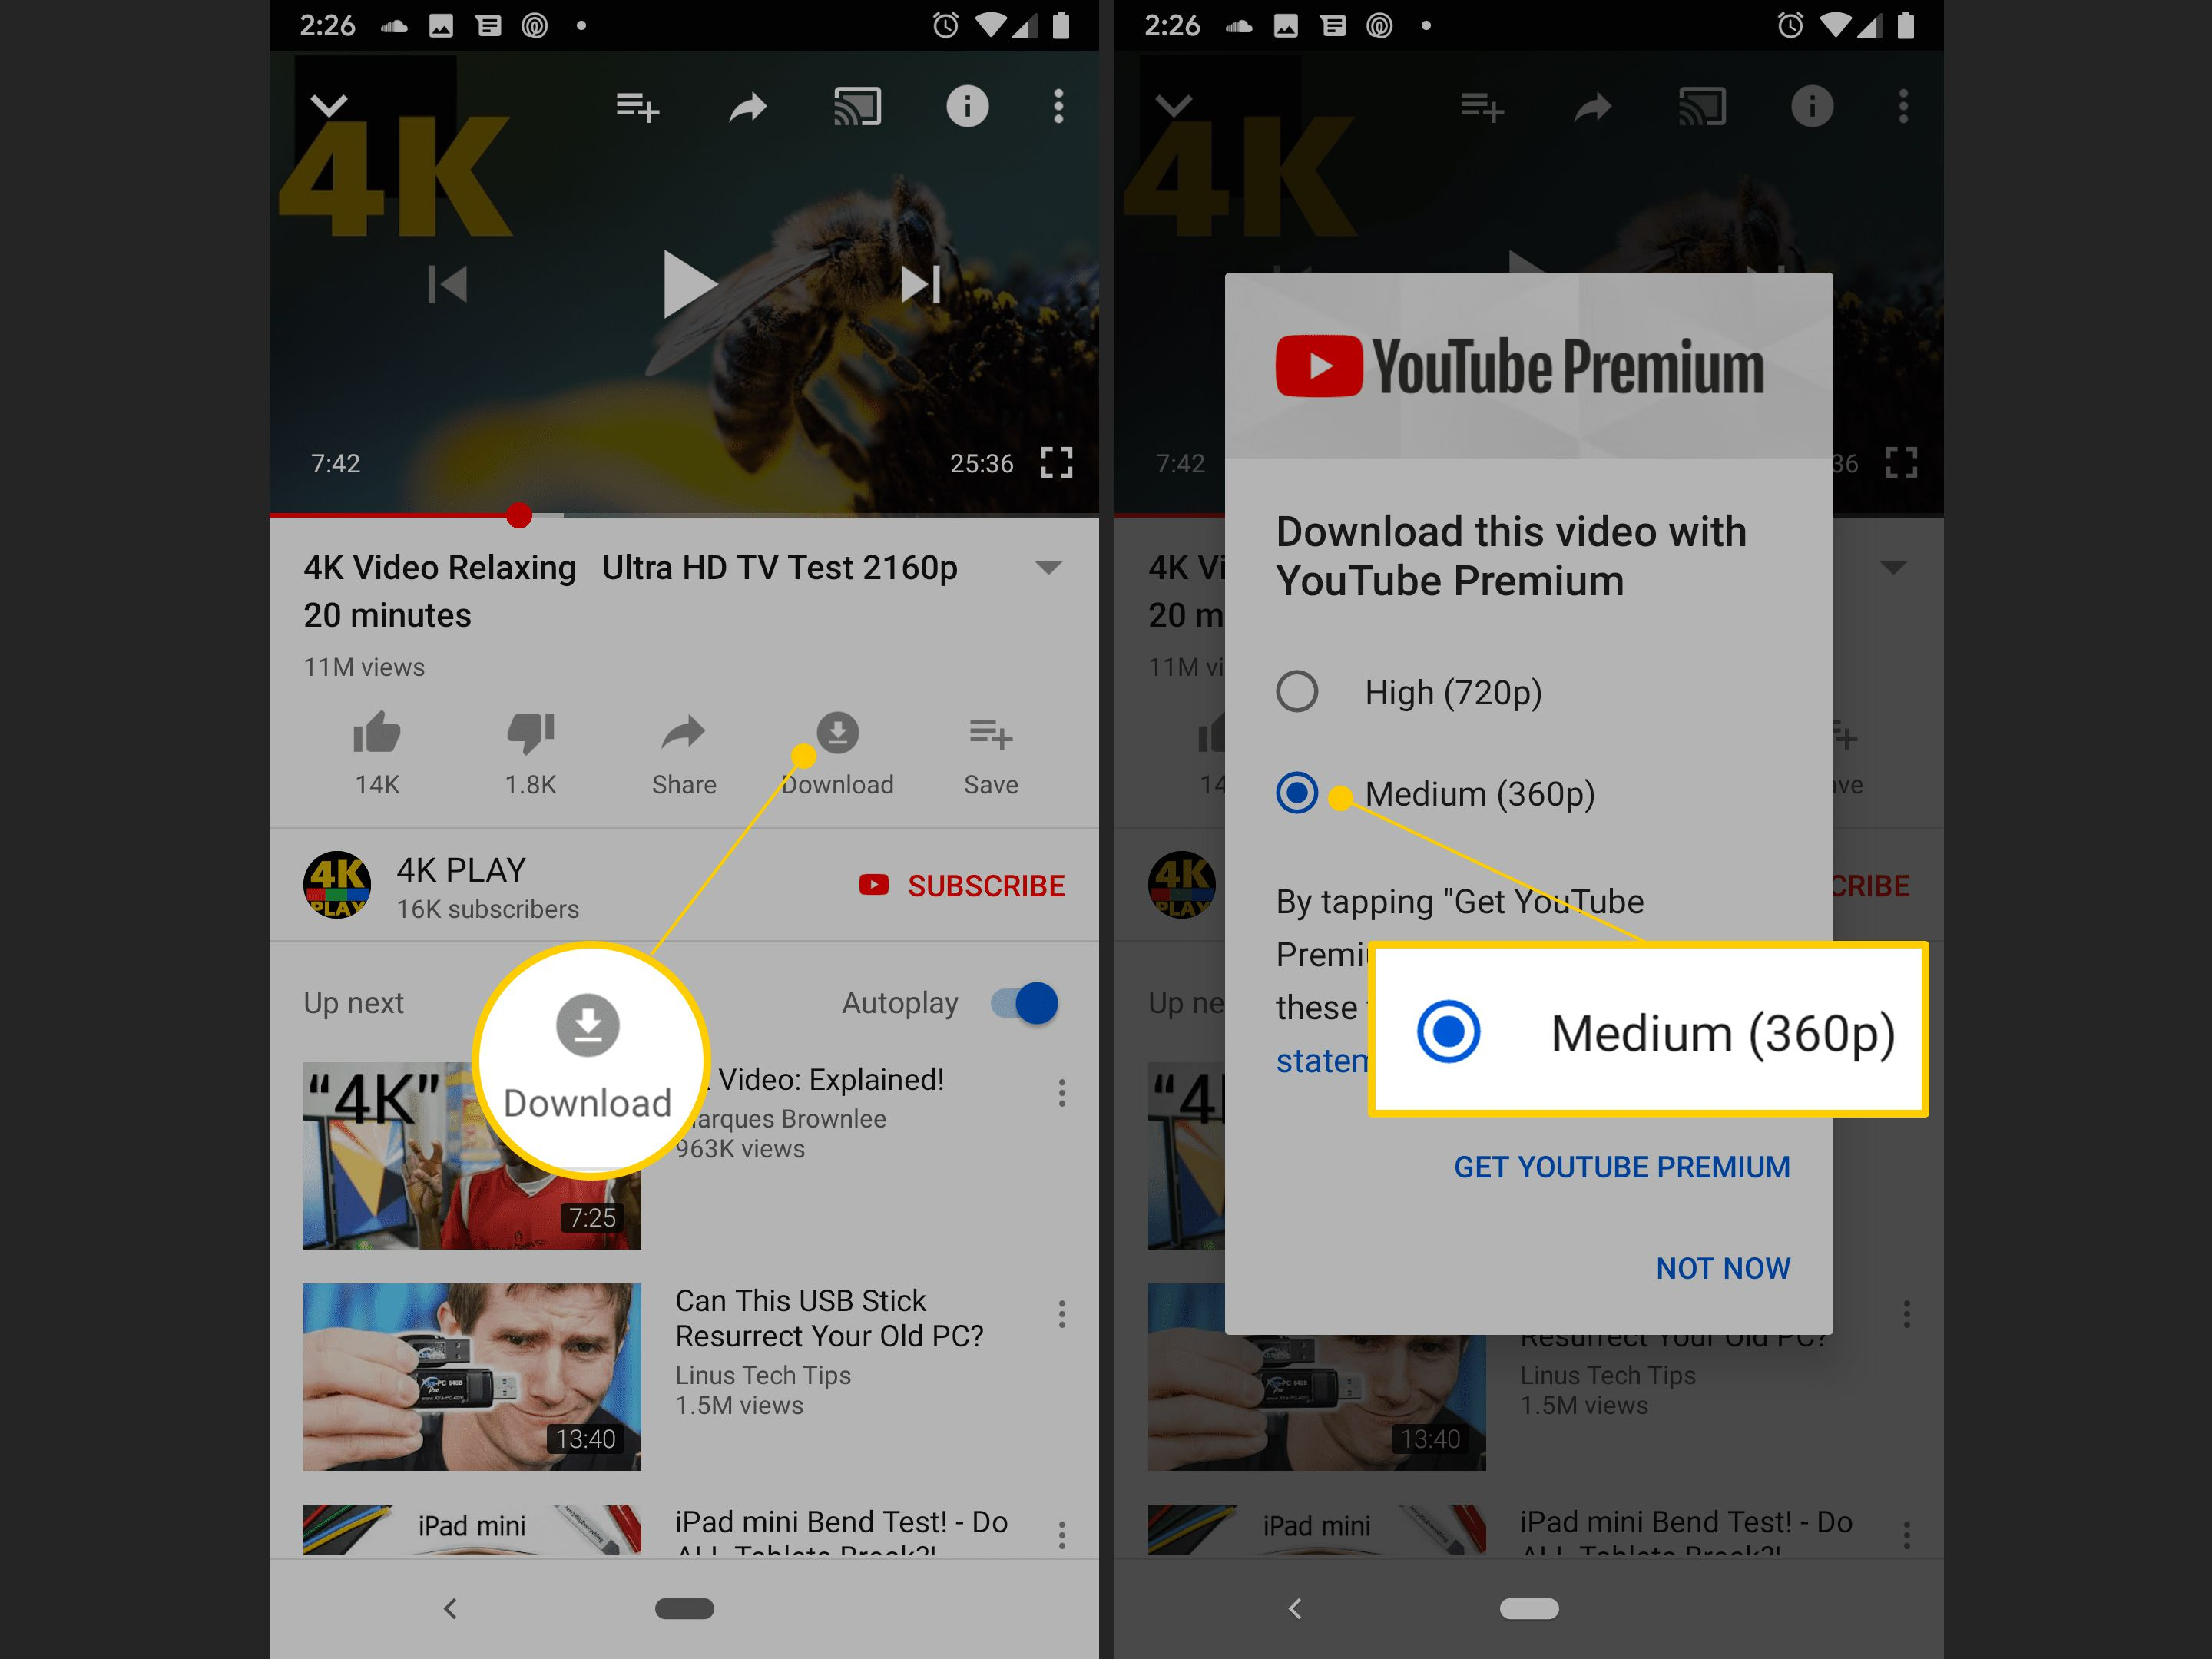 How to download a youtube video with premium